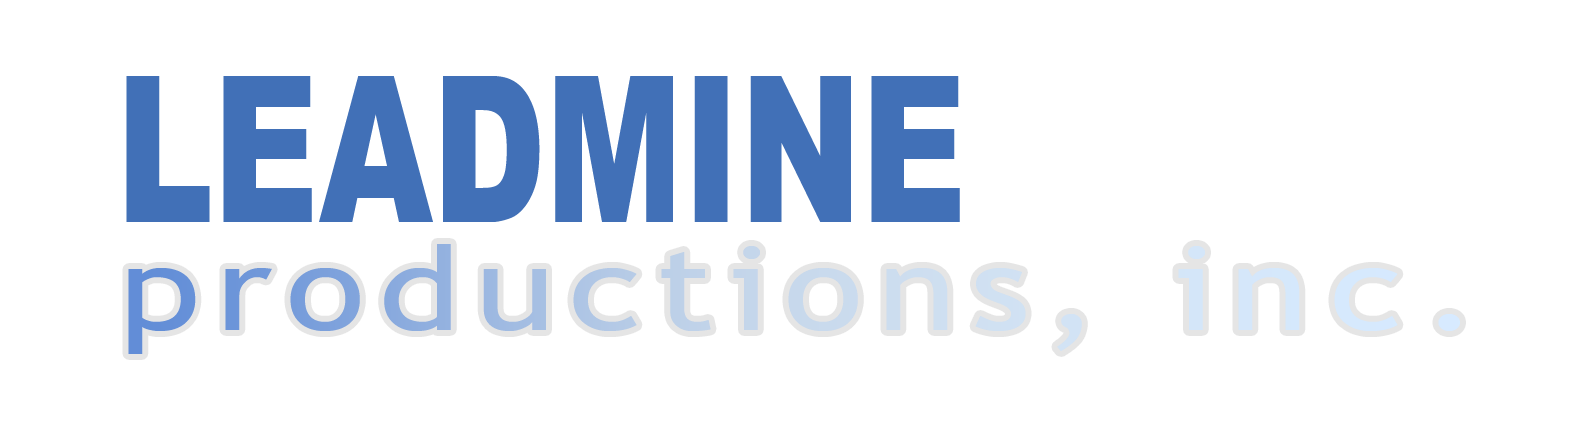 Leadmine Pond Productions, Inc.